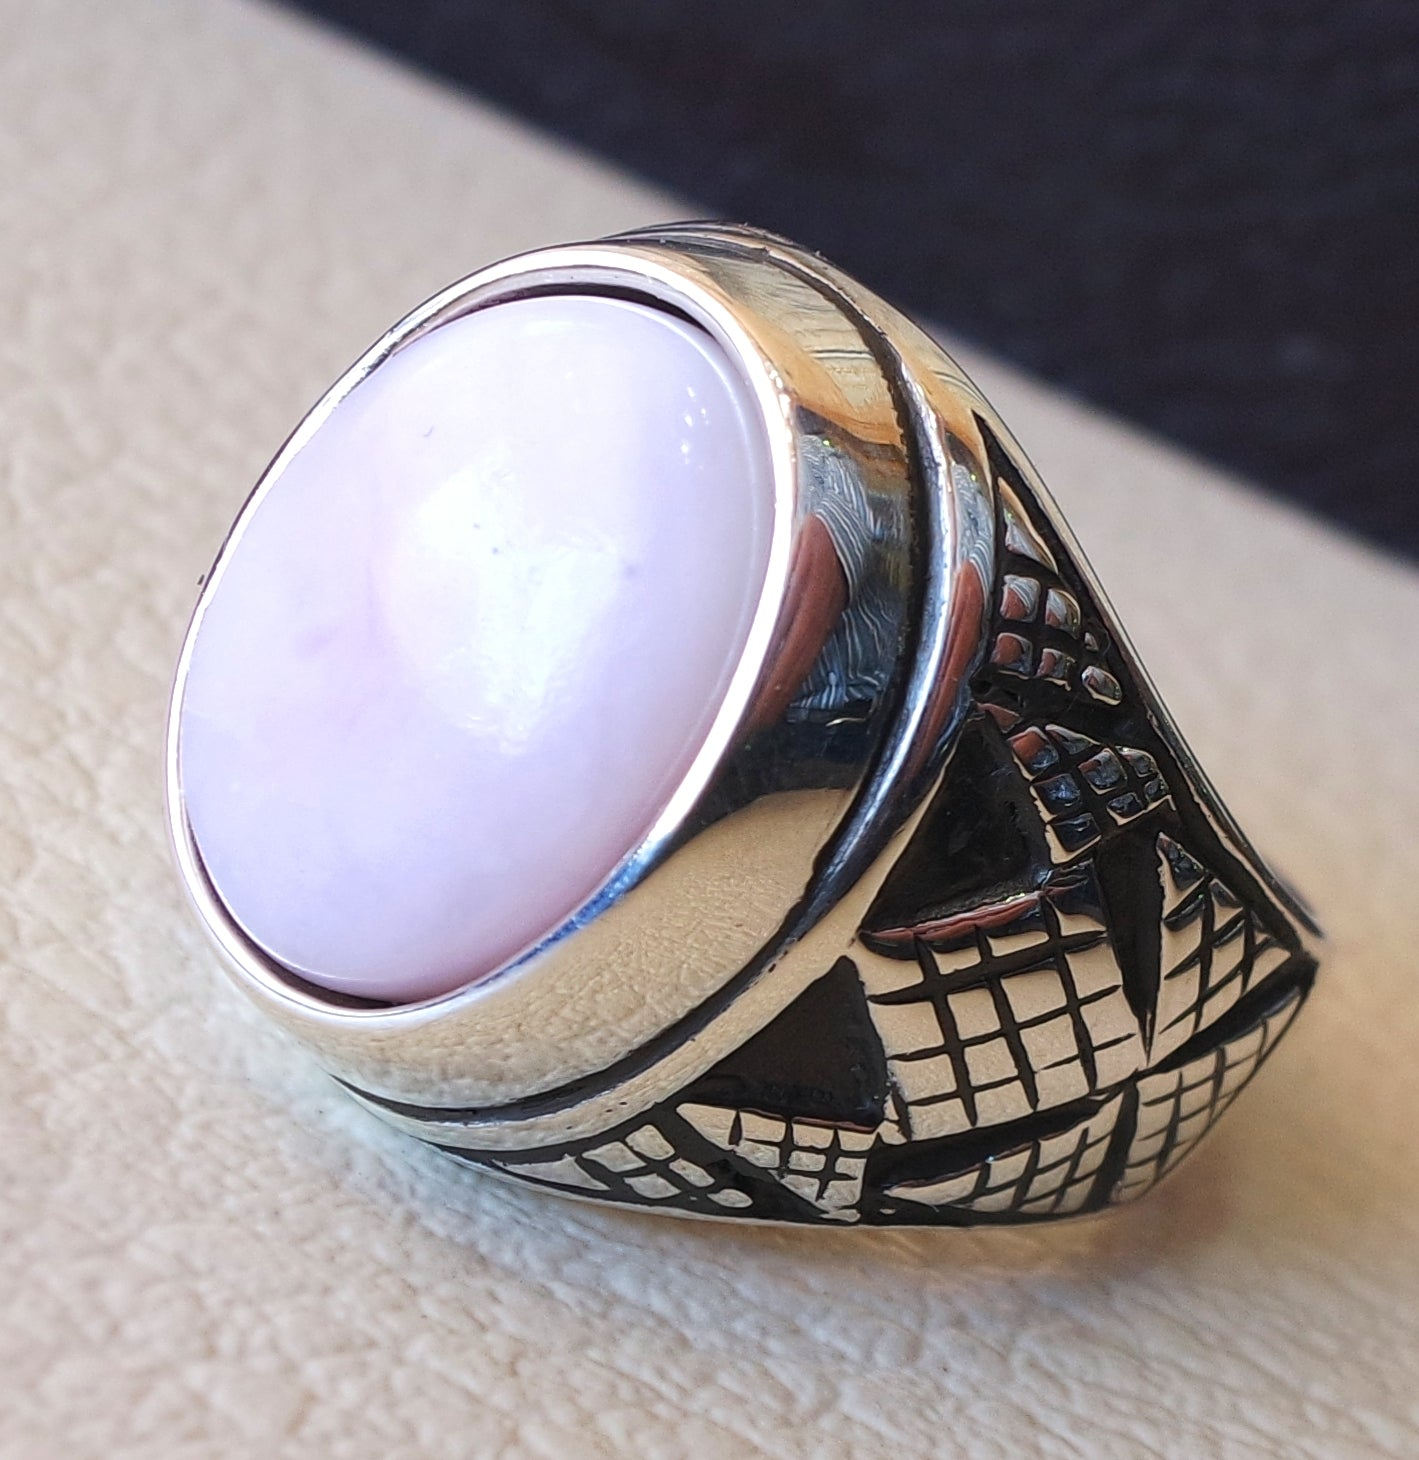 pink opal natural stone men ring sterling silver 925 stunning genuine gem ottoman arabic style jewelry all sizes